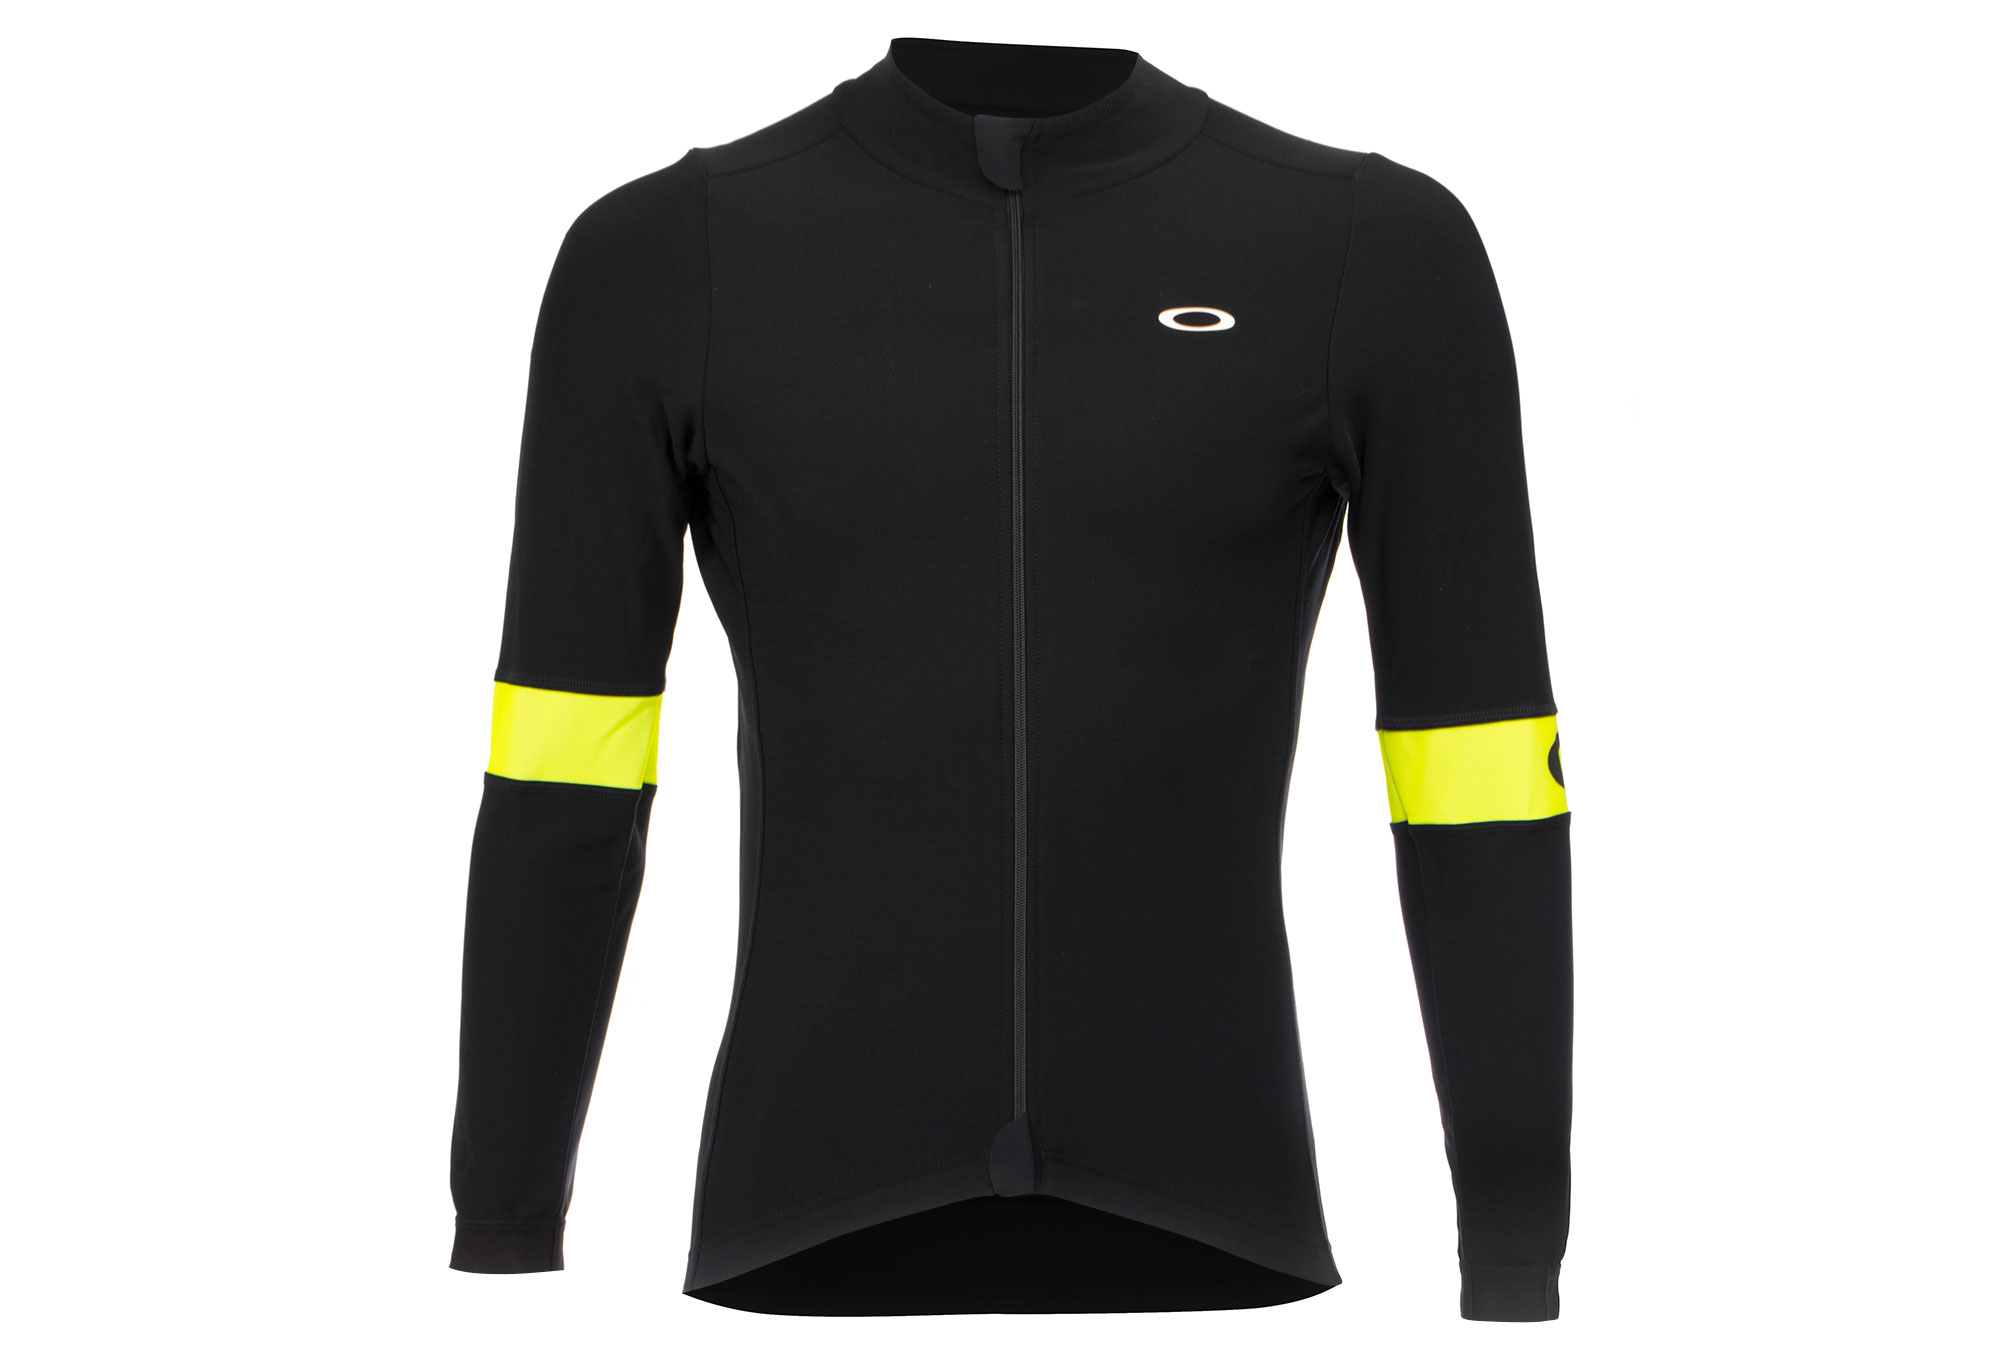 「oakley thermal jersey」の画像検索結果